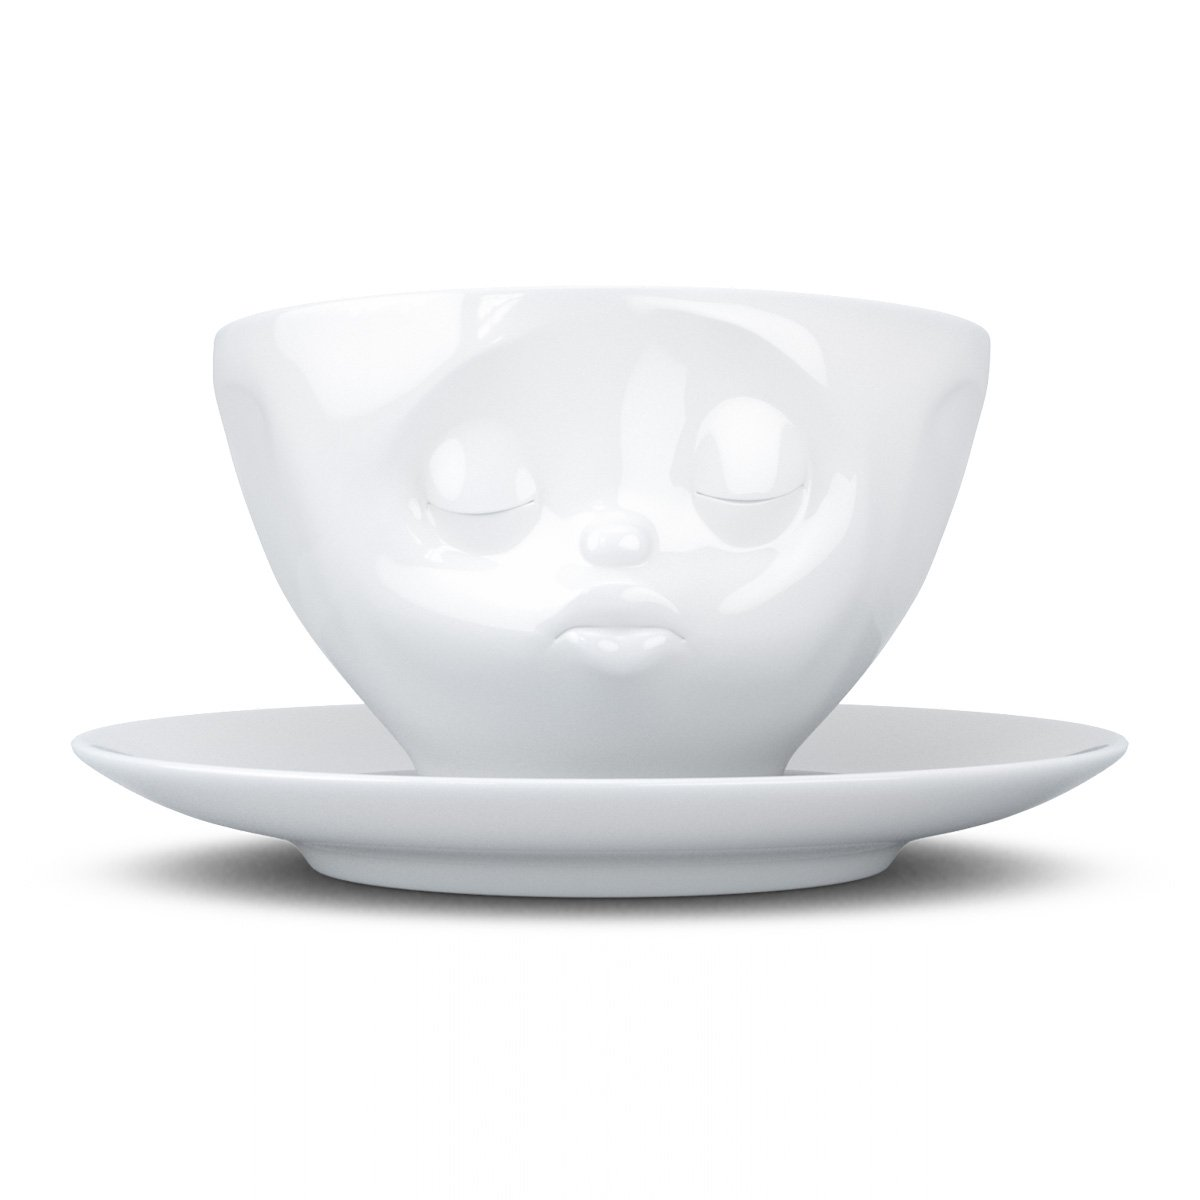 Fiftyeight Coffee Cup With Saucer Kissing Design White T014201